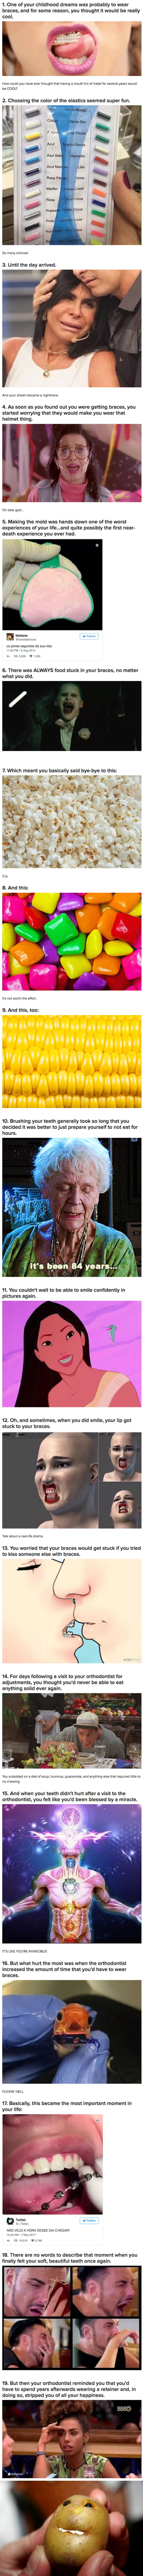 19 Struggles Brace-Faces Will Get